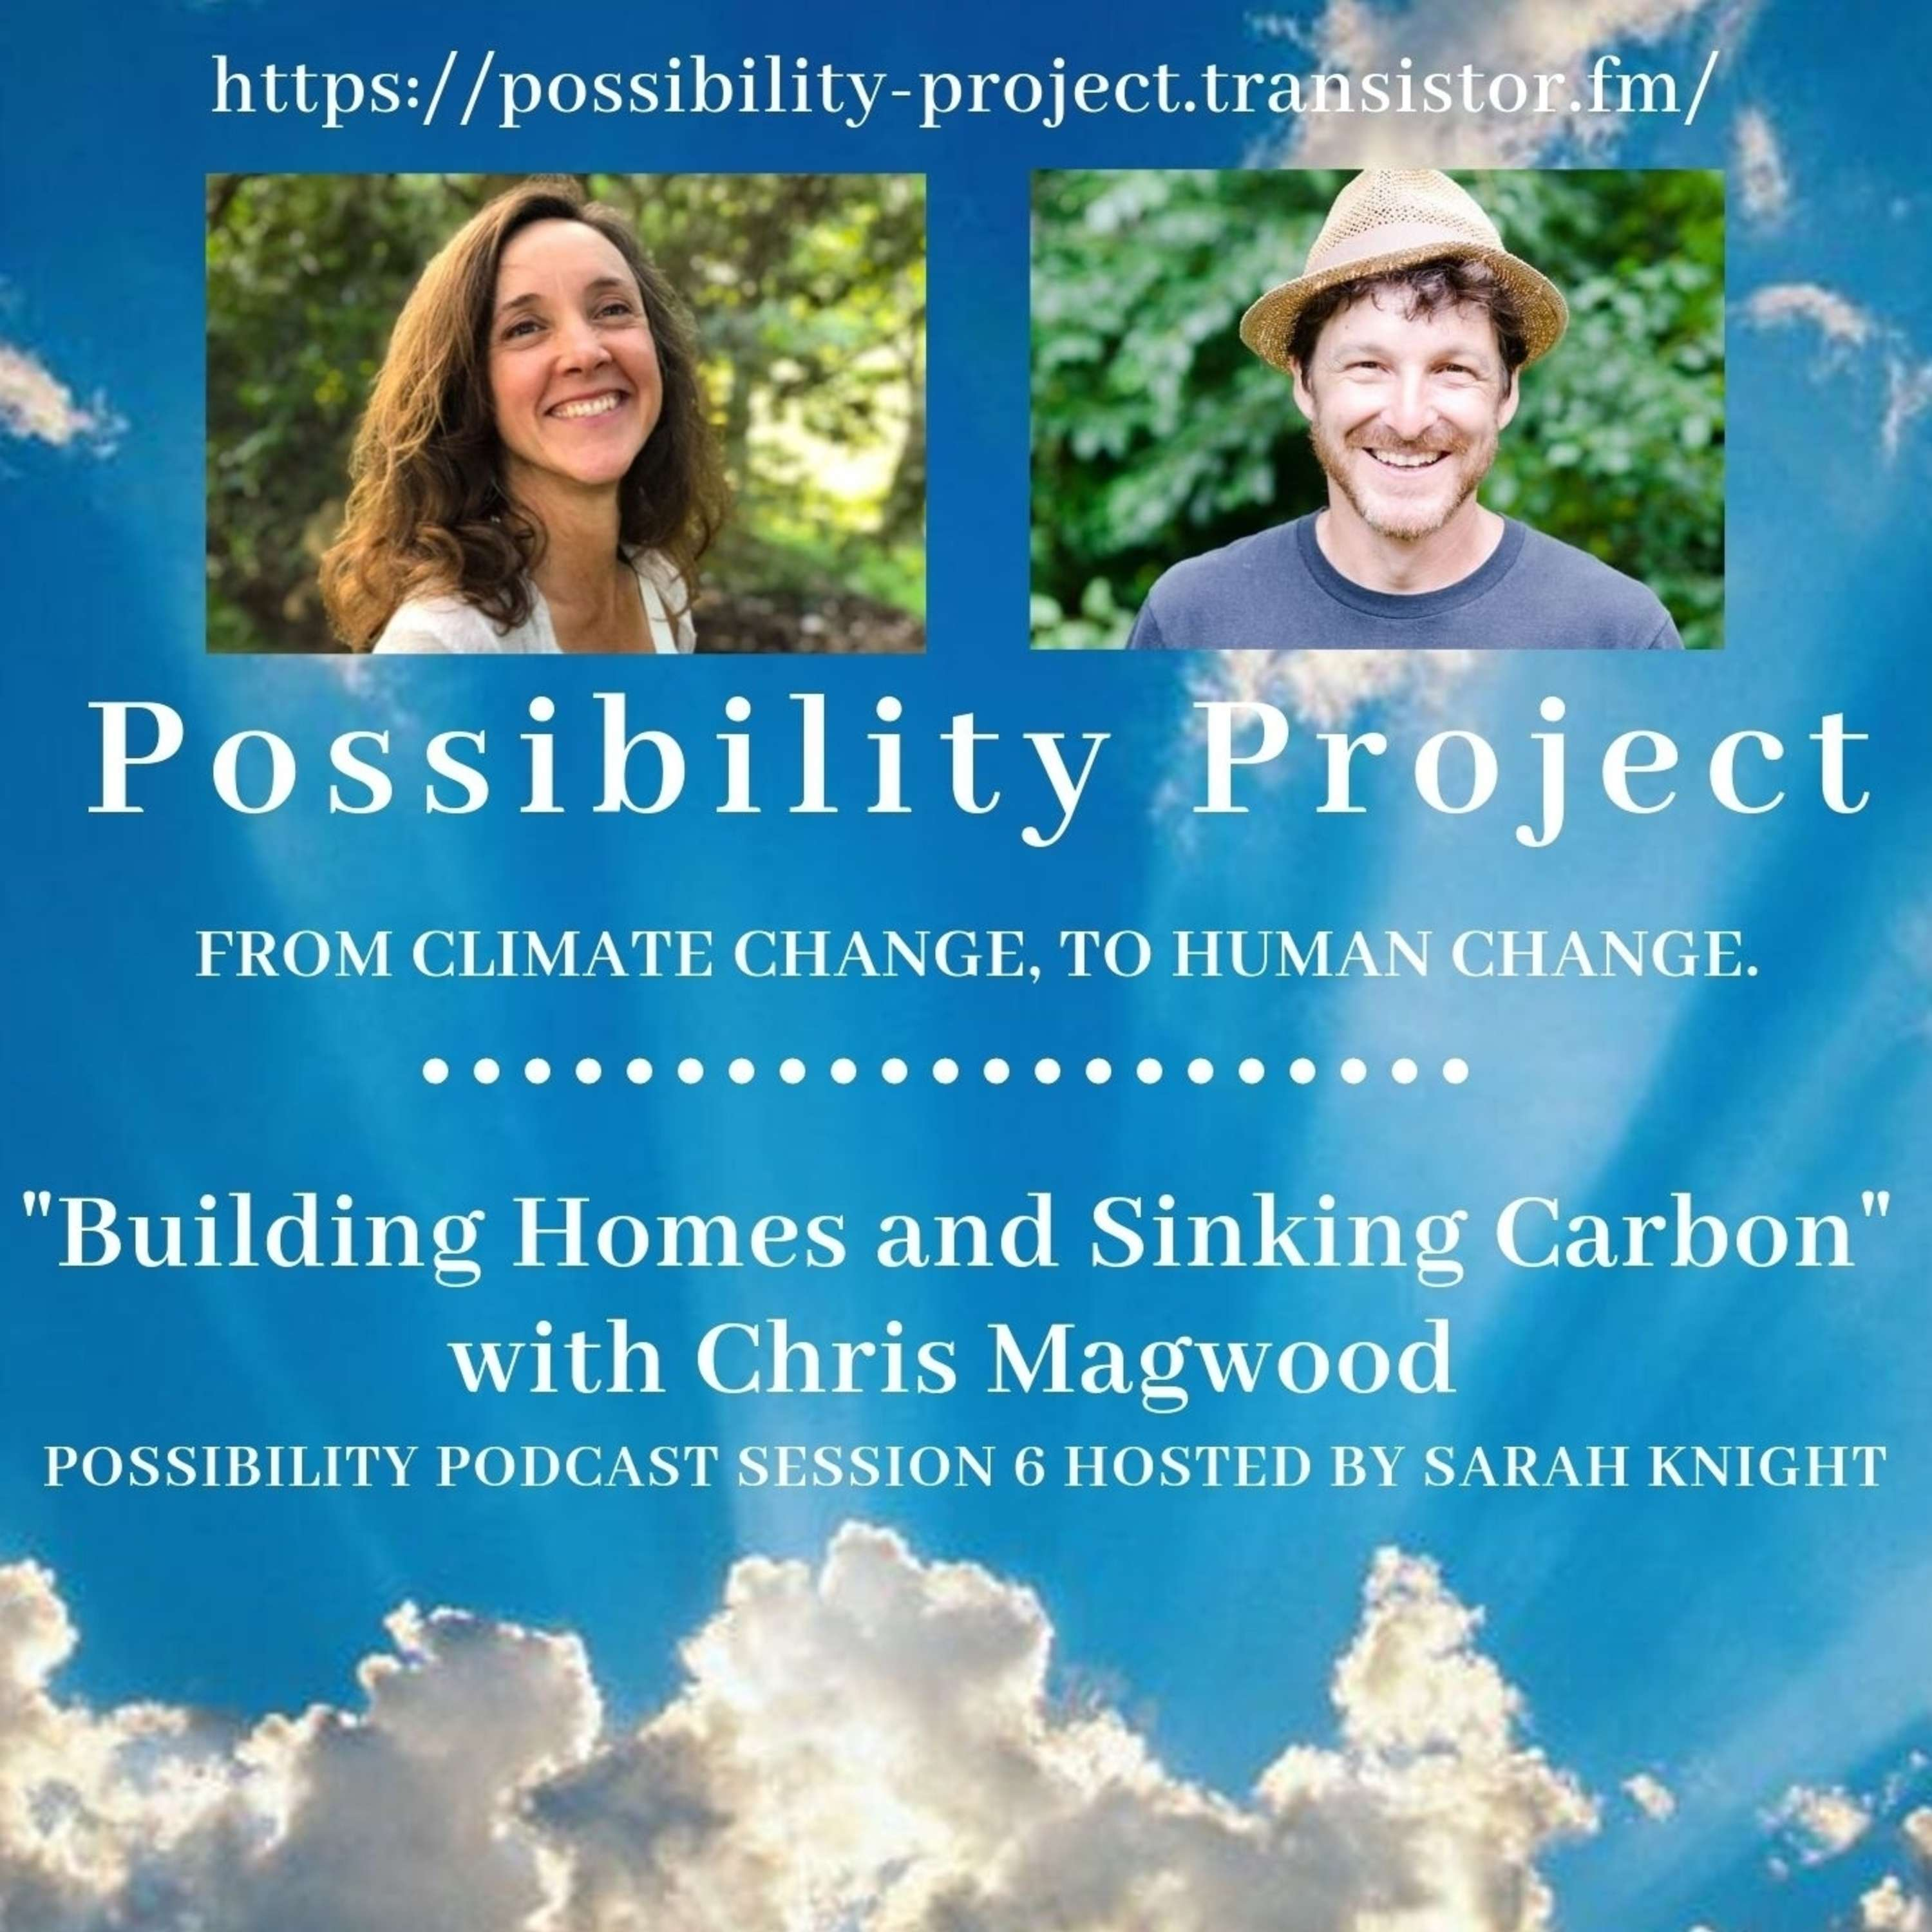 Building Homes and Sinking Carbon. Possibility Podcast Session 6